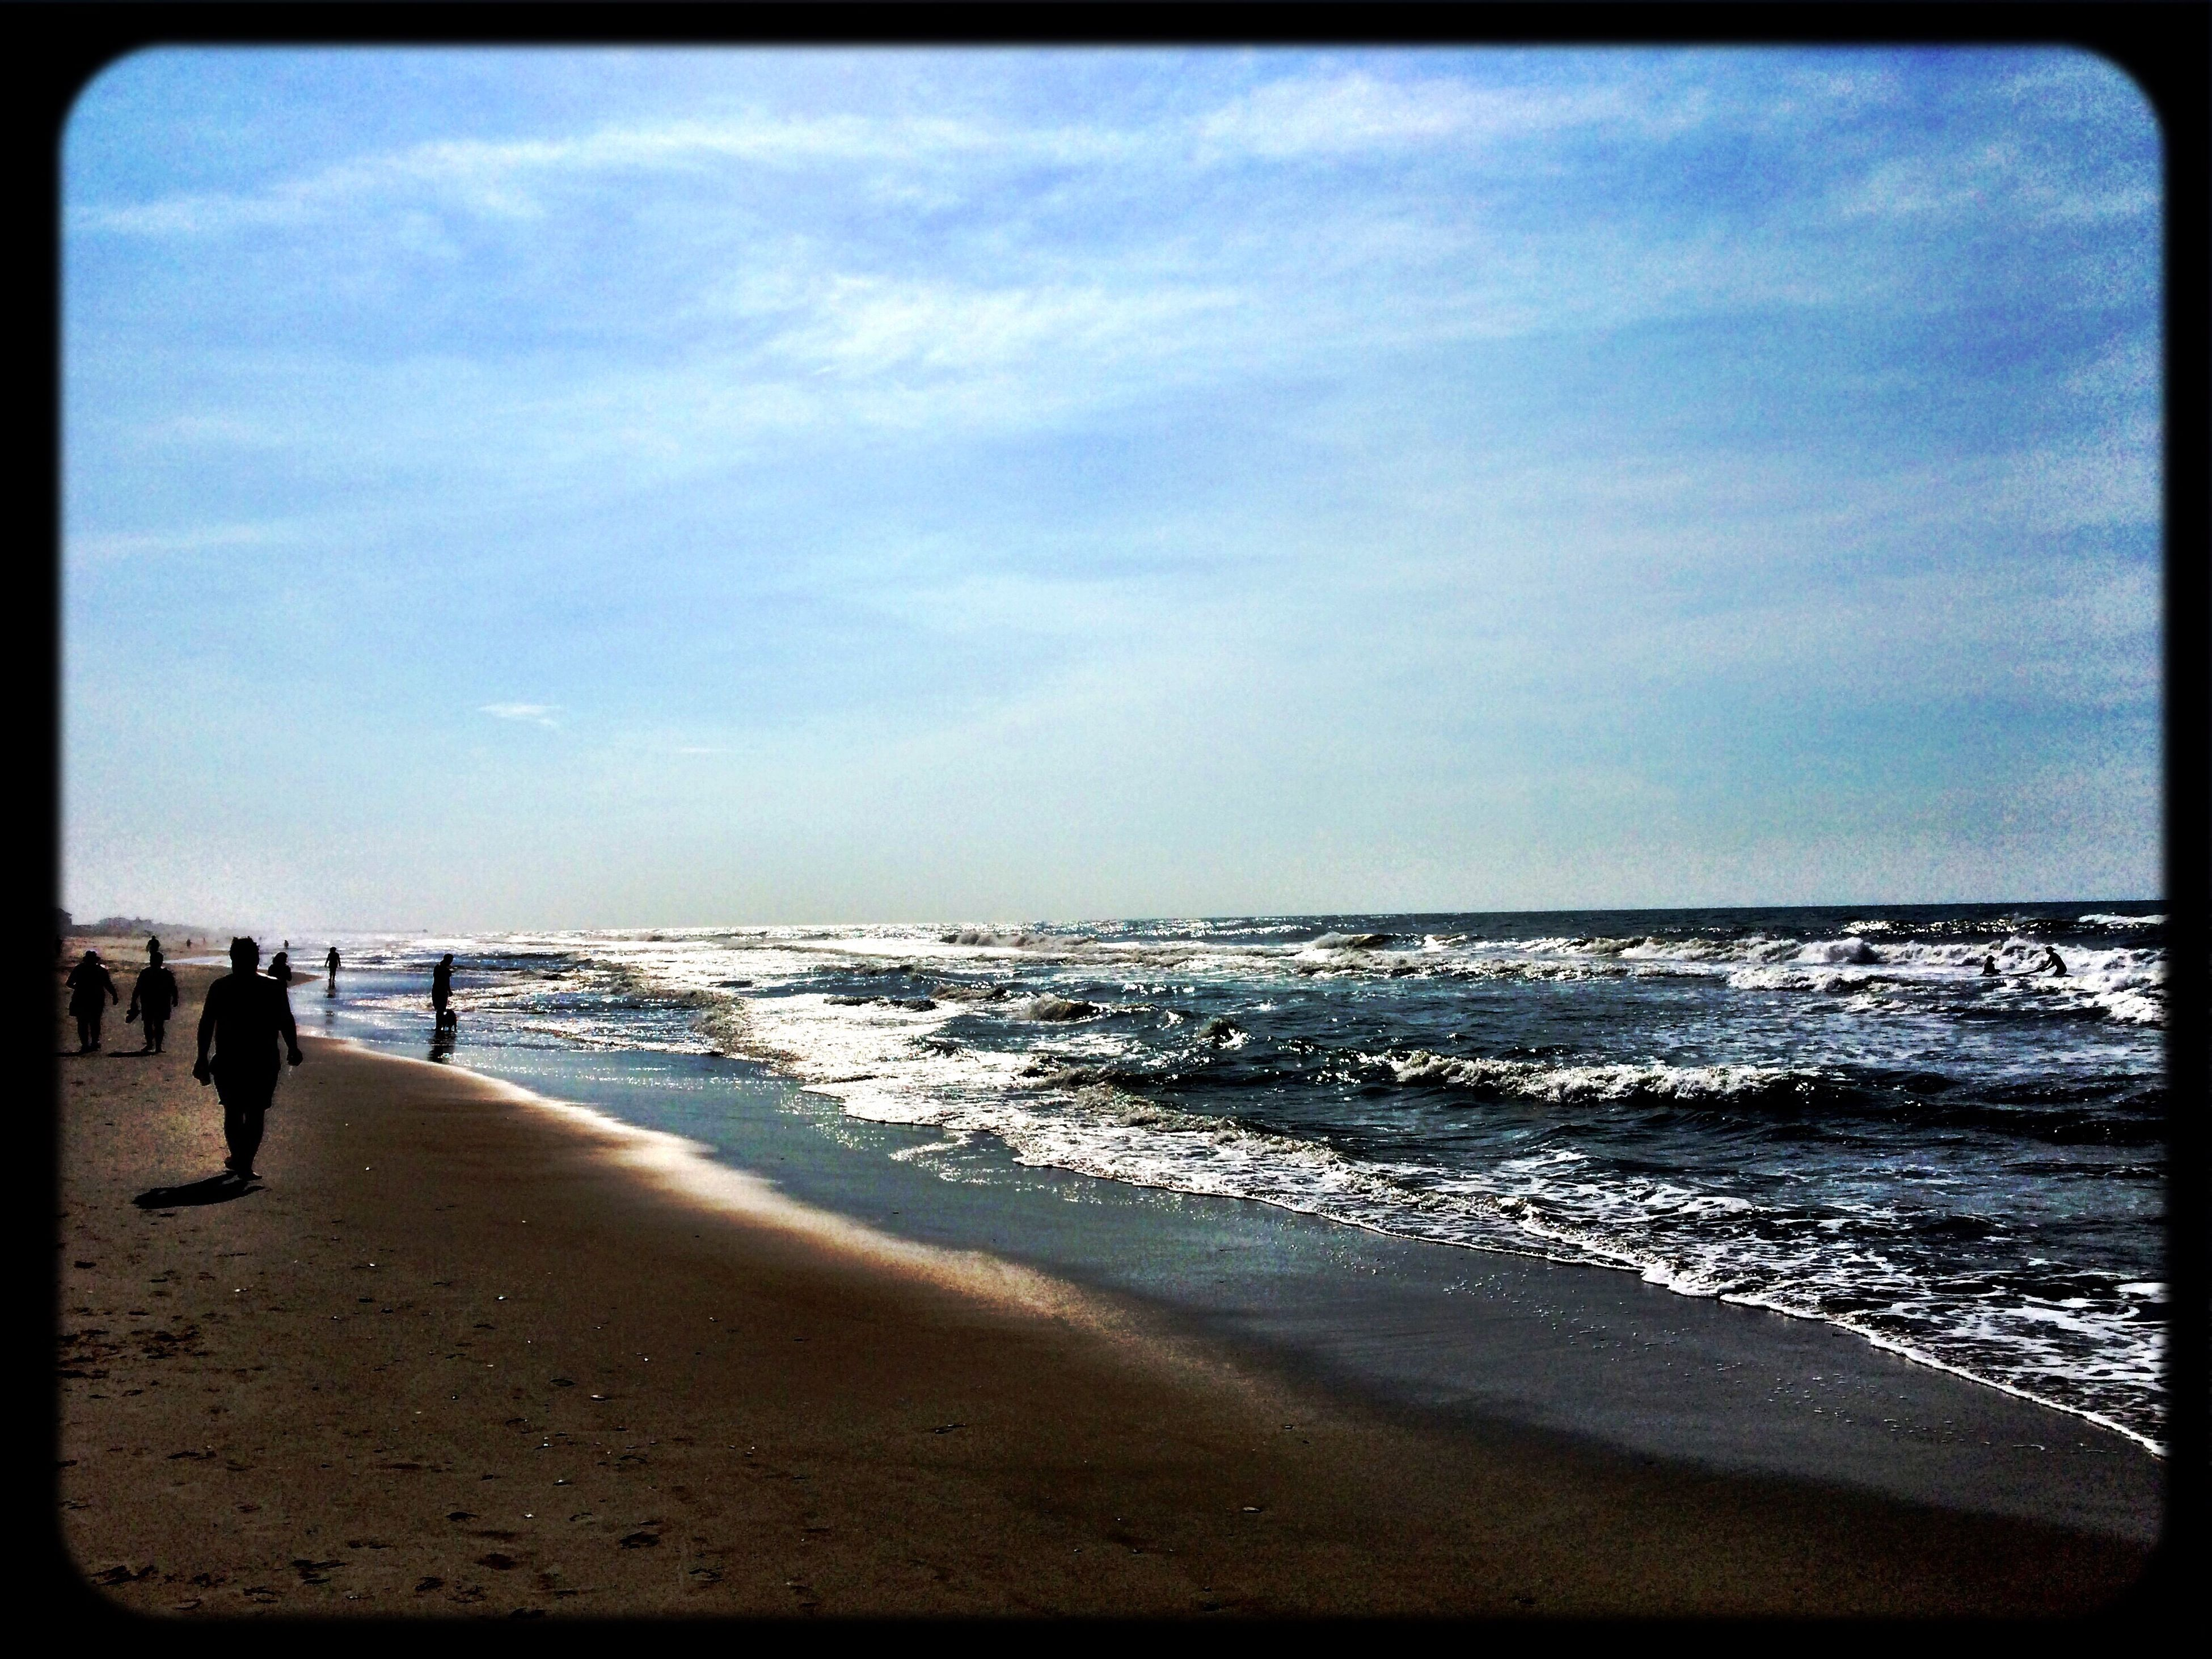 beach, sea, sand, horizon over water, shore, water, sky, scenics, tranquil scene, tranquility, beauty in nature, vacations, coastline, wave, transfer print, nature, tourist, incidental people, leisure activity